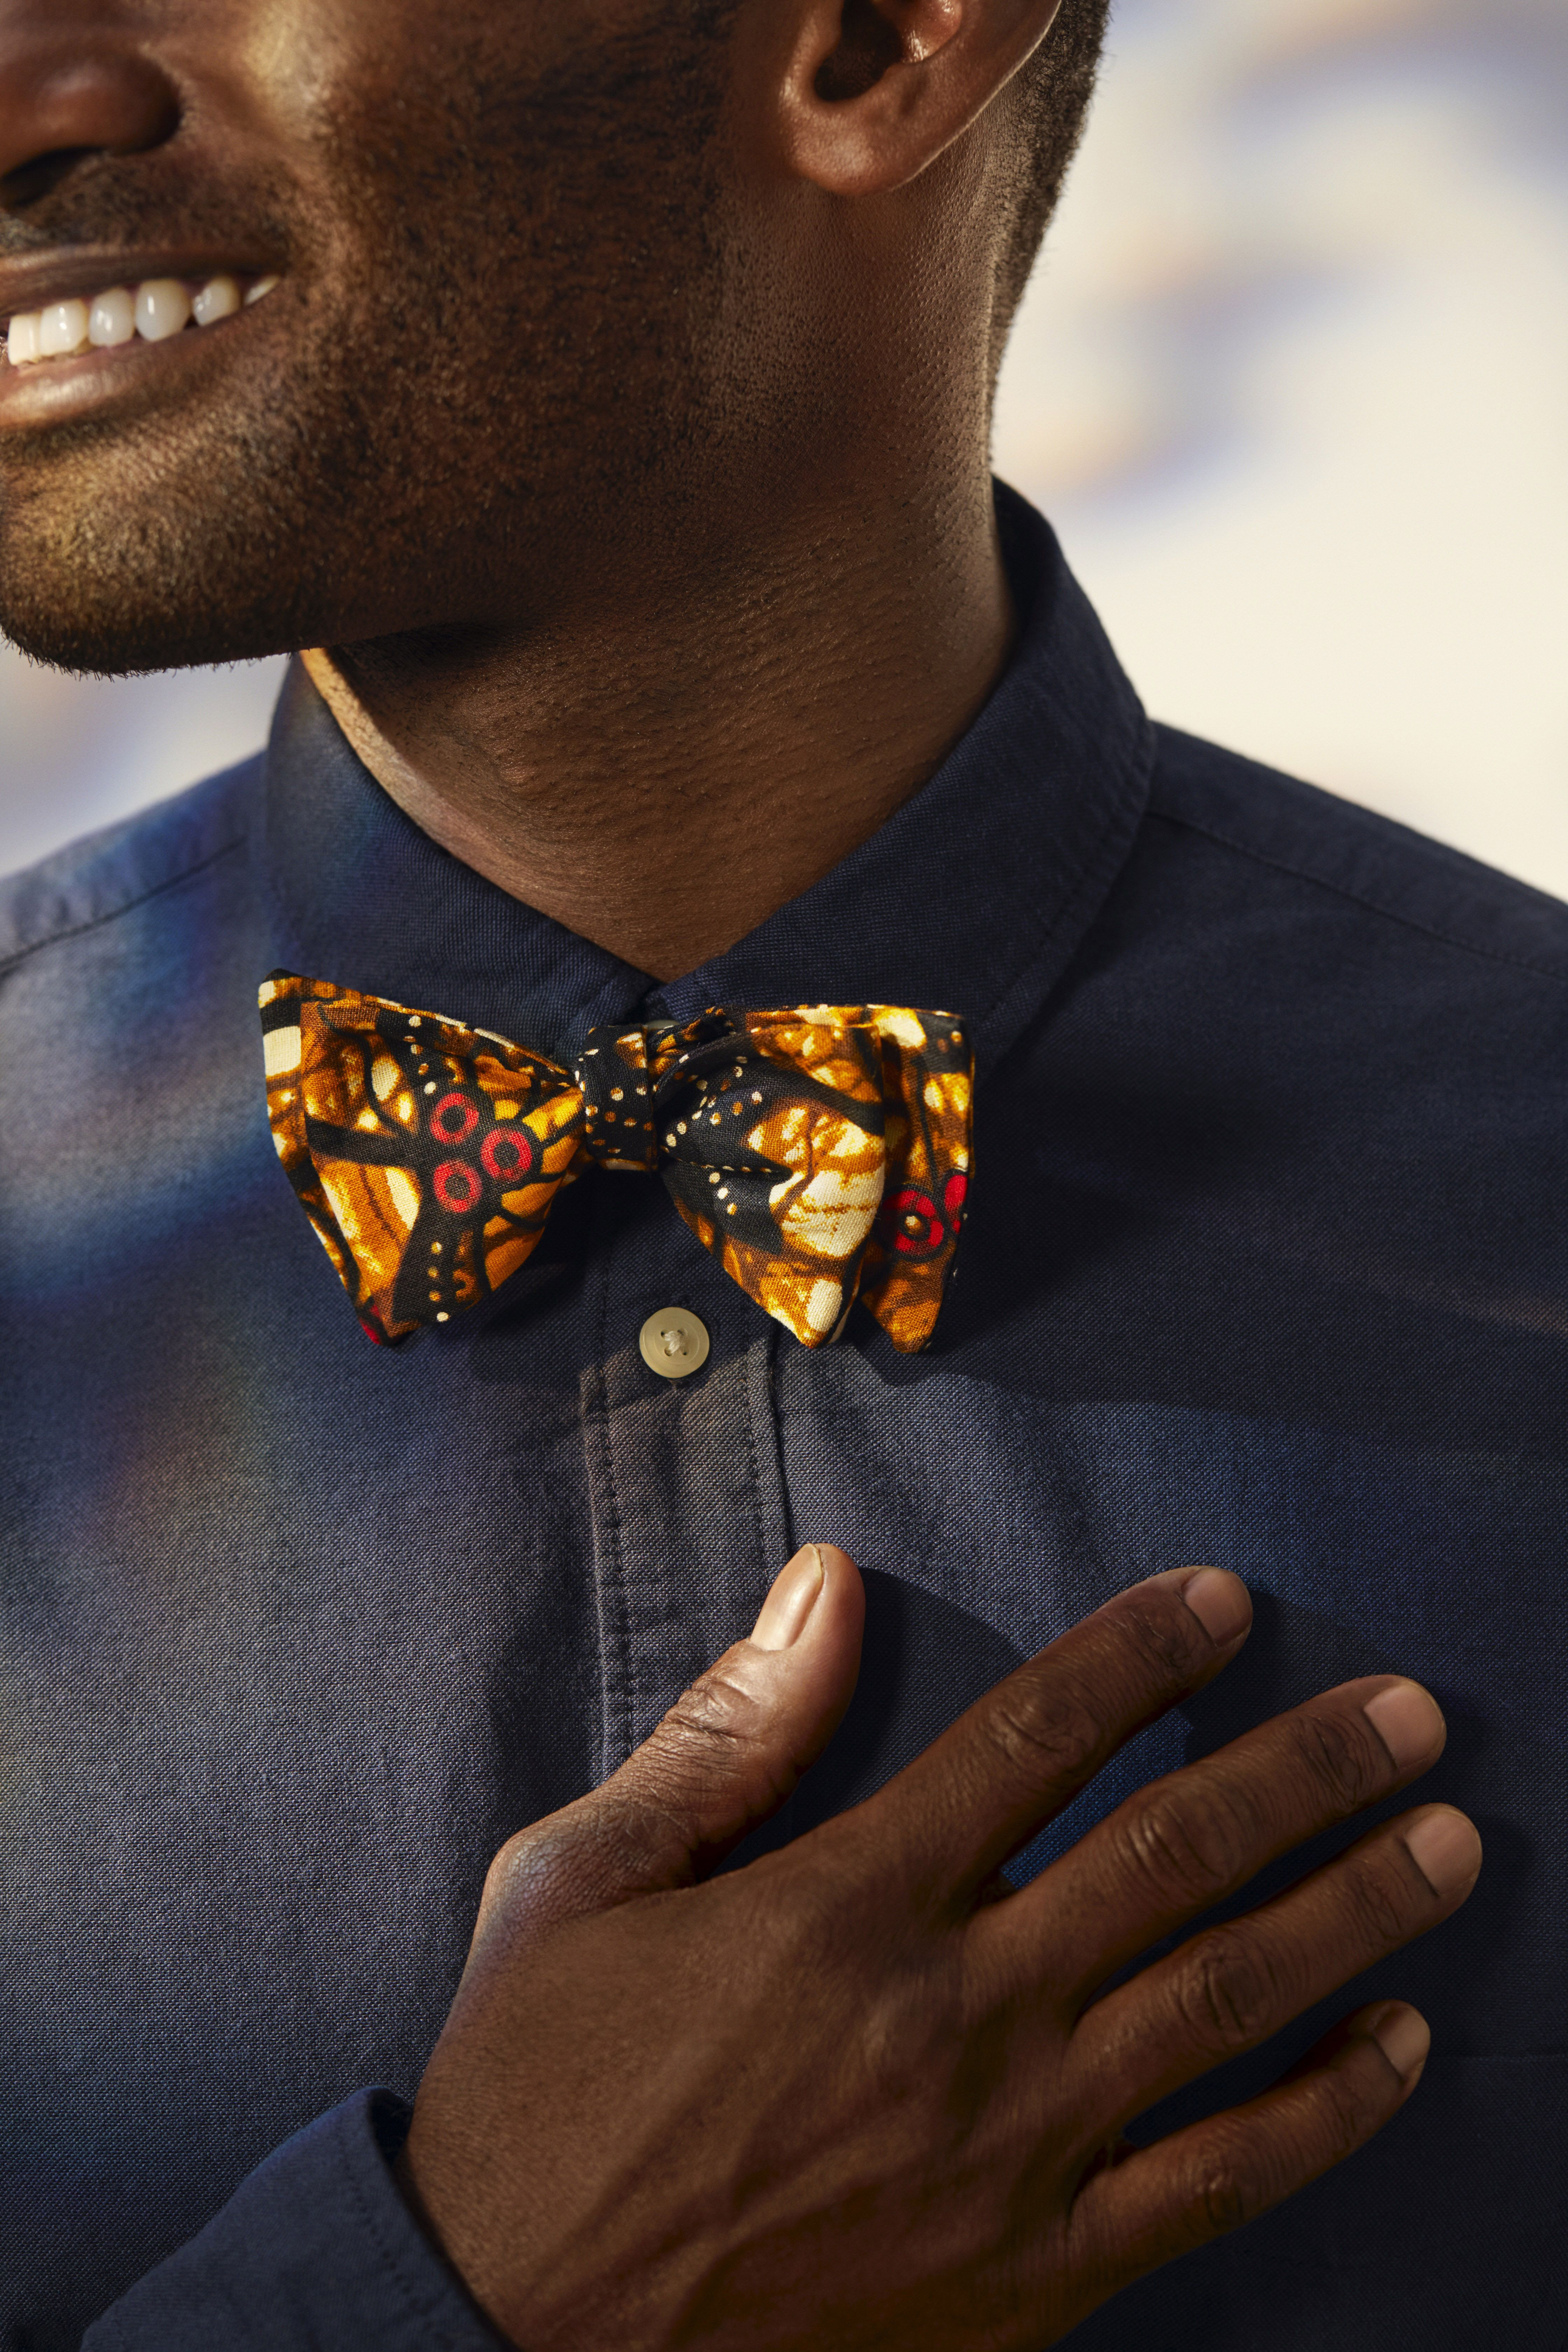 Stunning bowtie made with multicolored African fabric. This stylish bowtie makes a unique gift for him for the holidays, his birthday, or Father's Day. For all kinds of gifts for him, from unique and personalized to functional and everyday essentials, on Etsy.